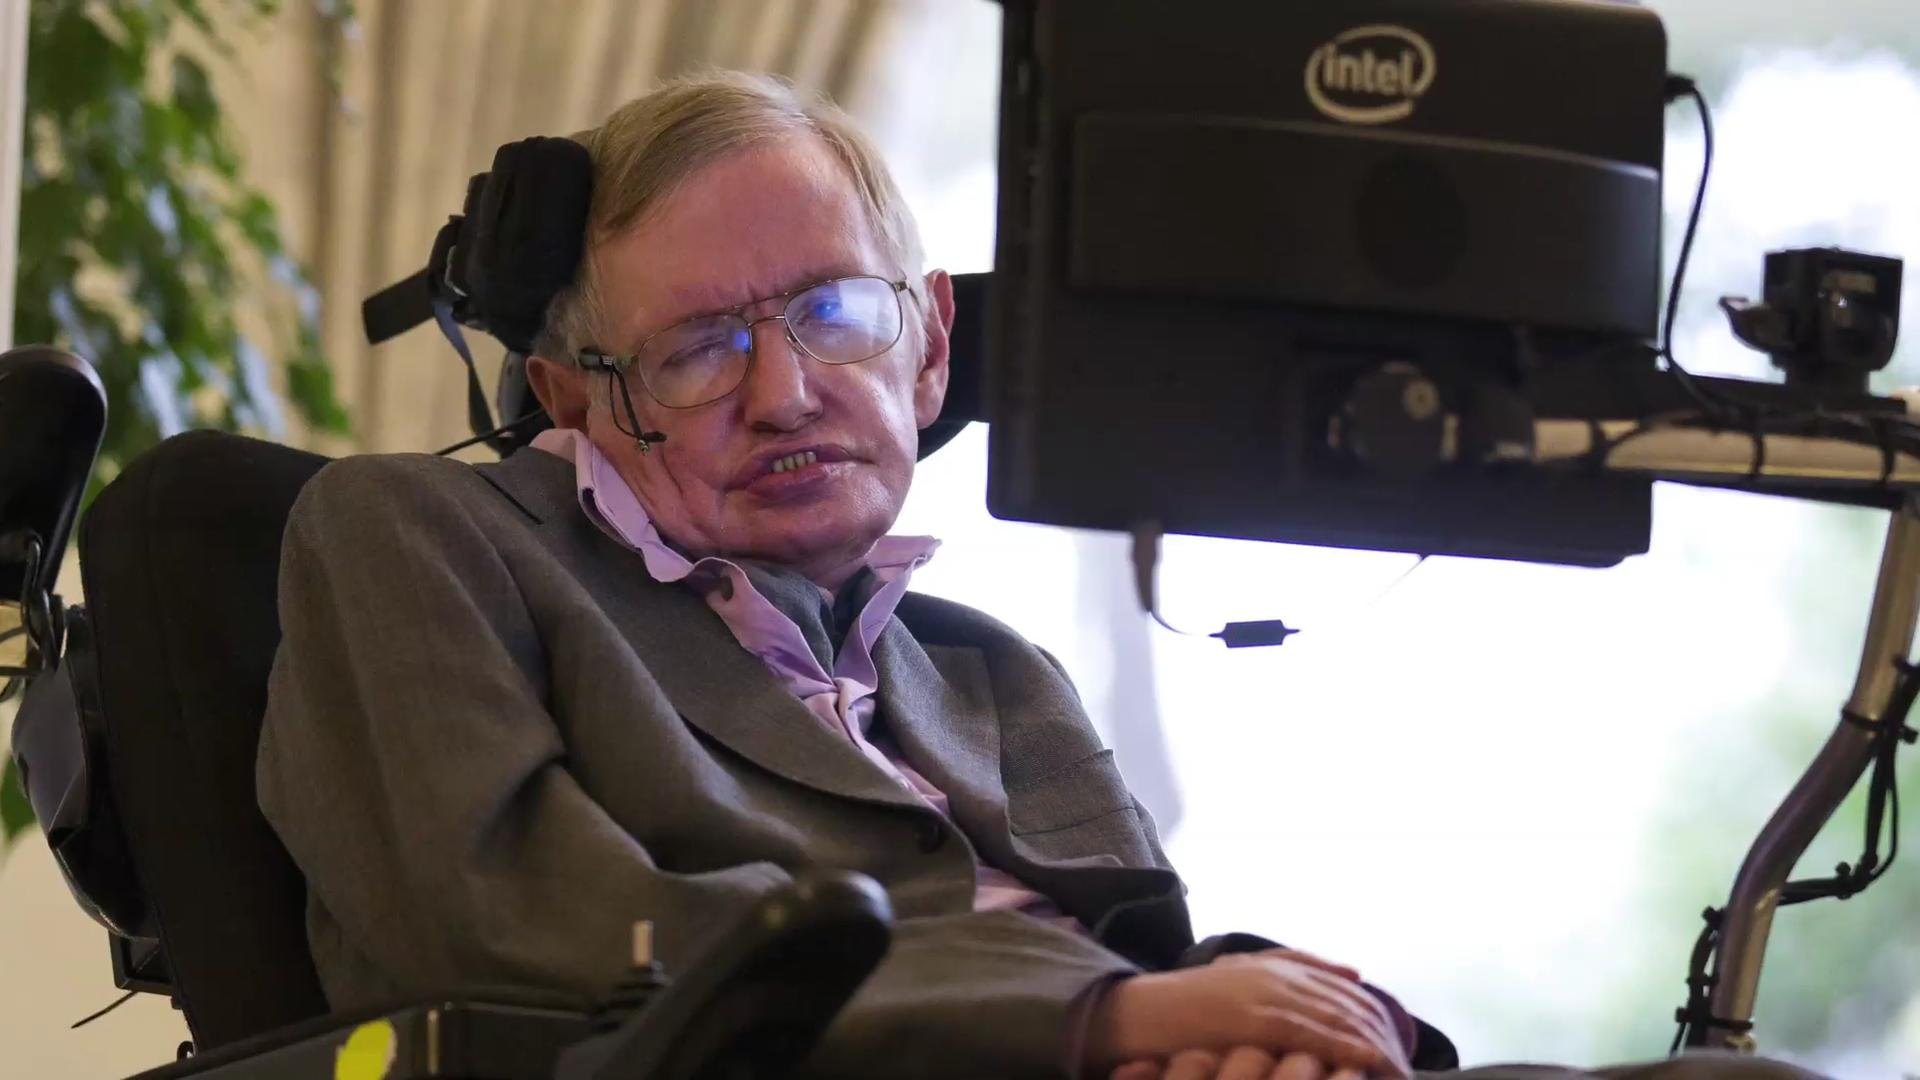 Stephen Hawking supports $100M fund towards search for alien life